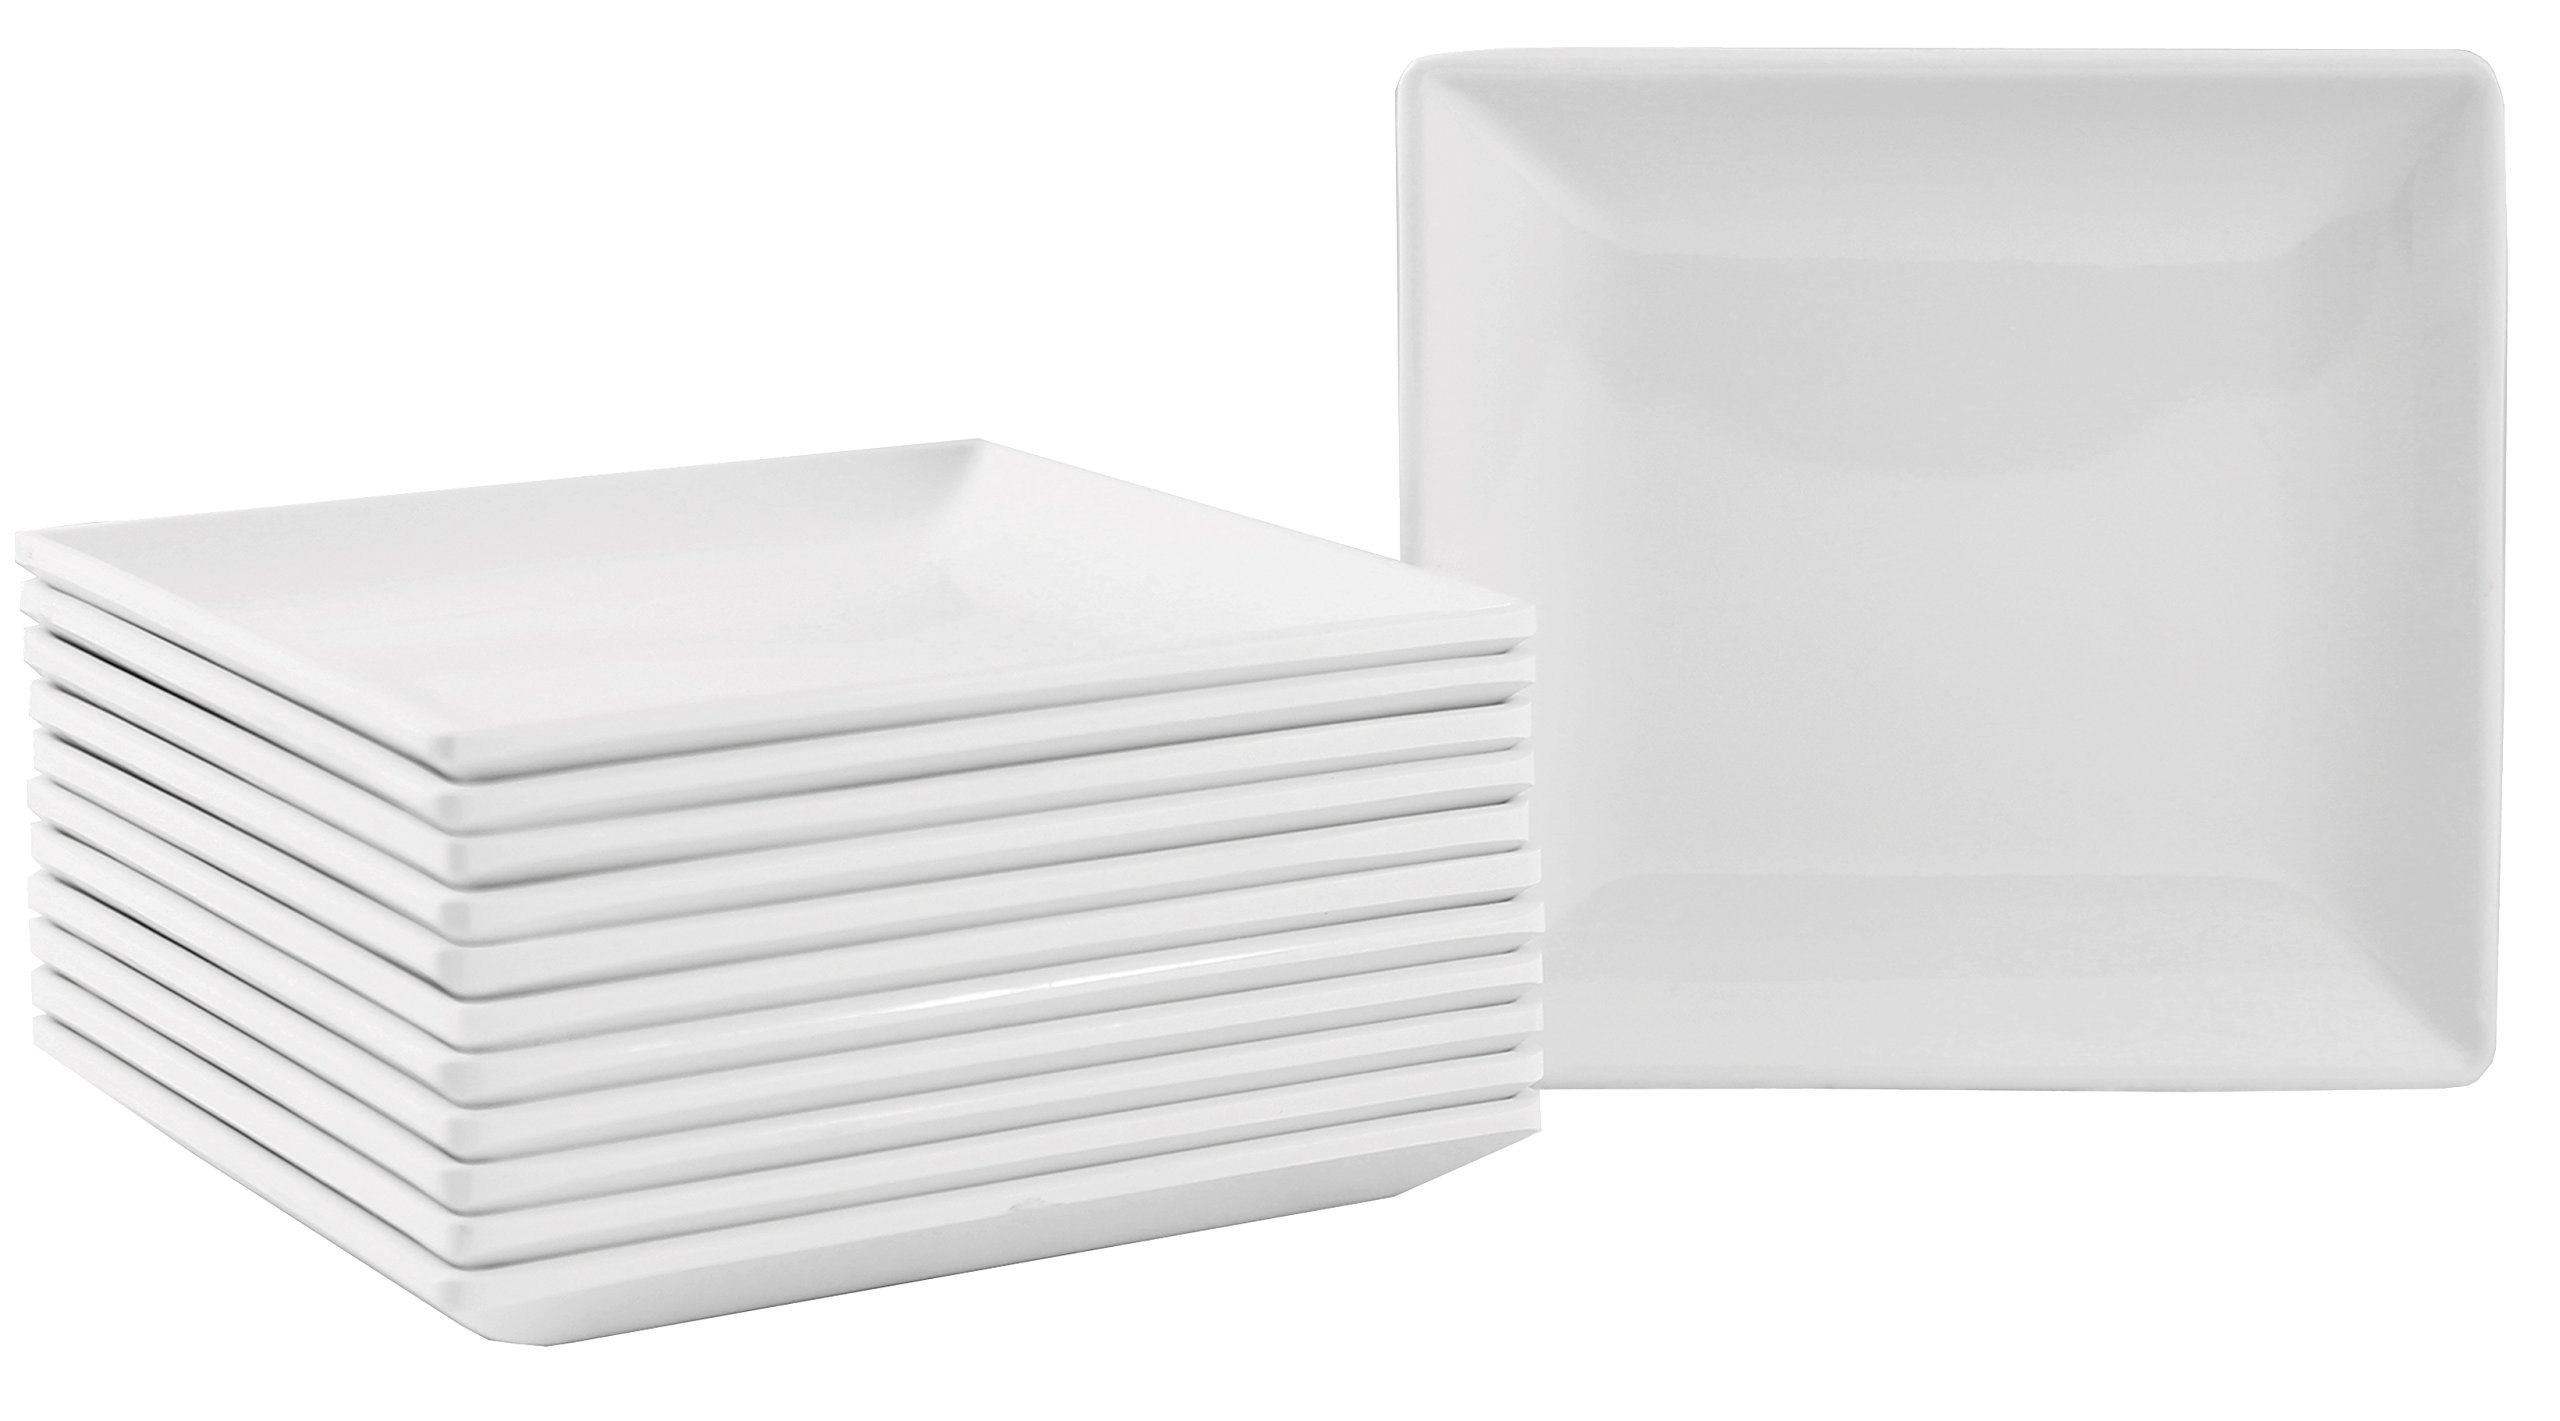 Square Melamine Appetizer Plates with Flared Edges and Pan Scraper, 4.25 inches, Set of 12, White